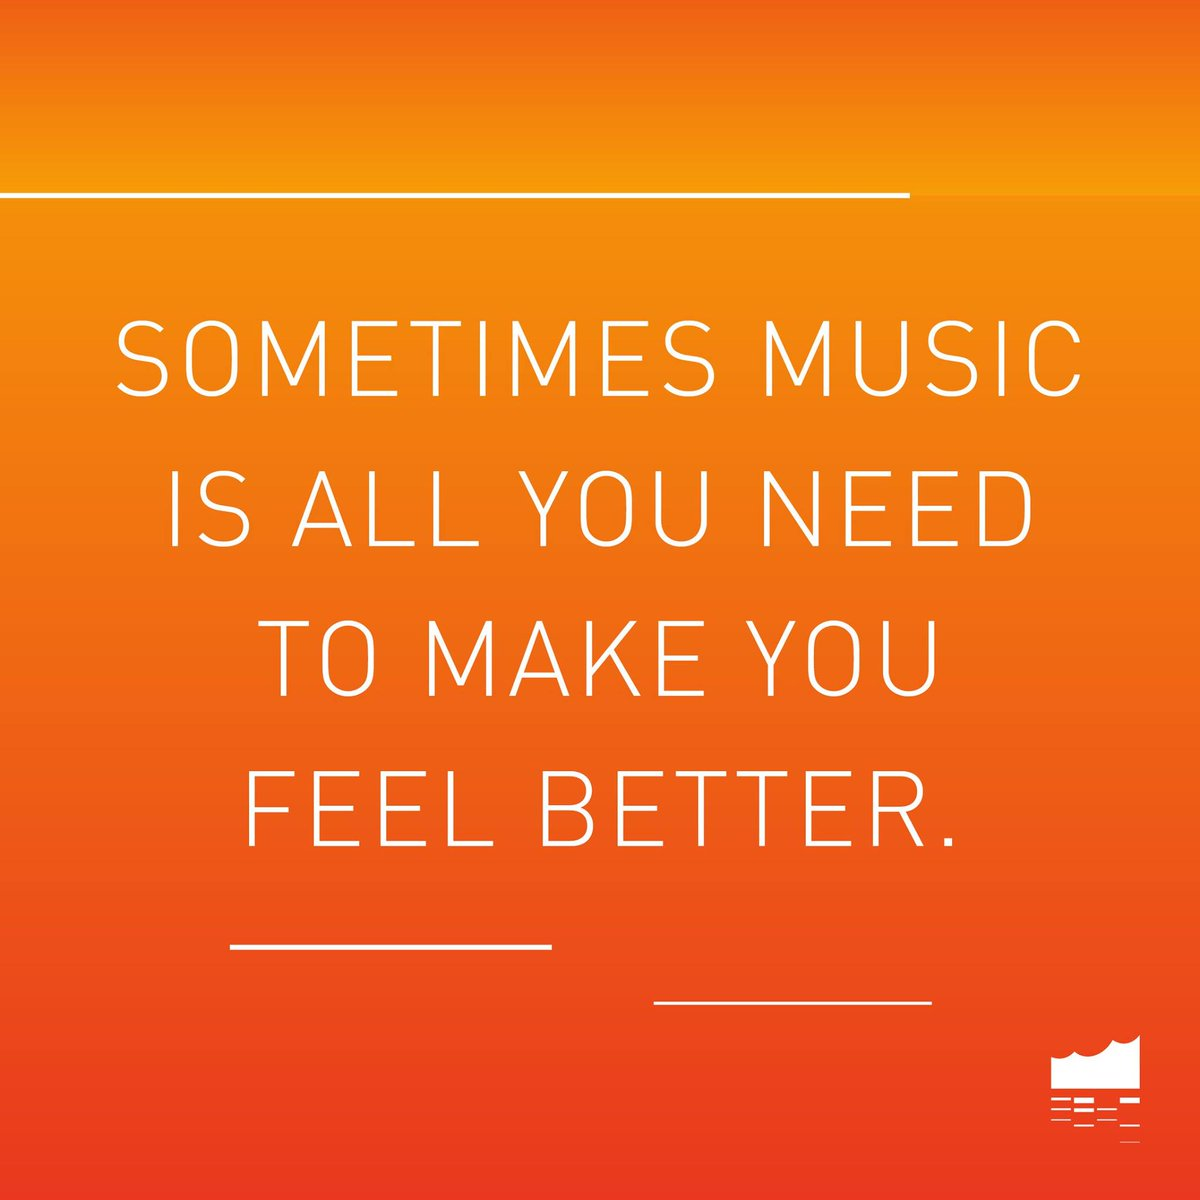 Music is the best solution. Always! 💛 https://t.co/BhpZHVoBLx